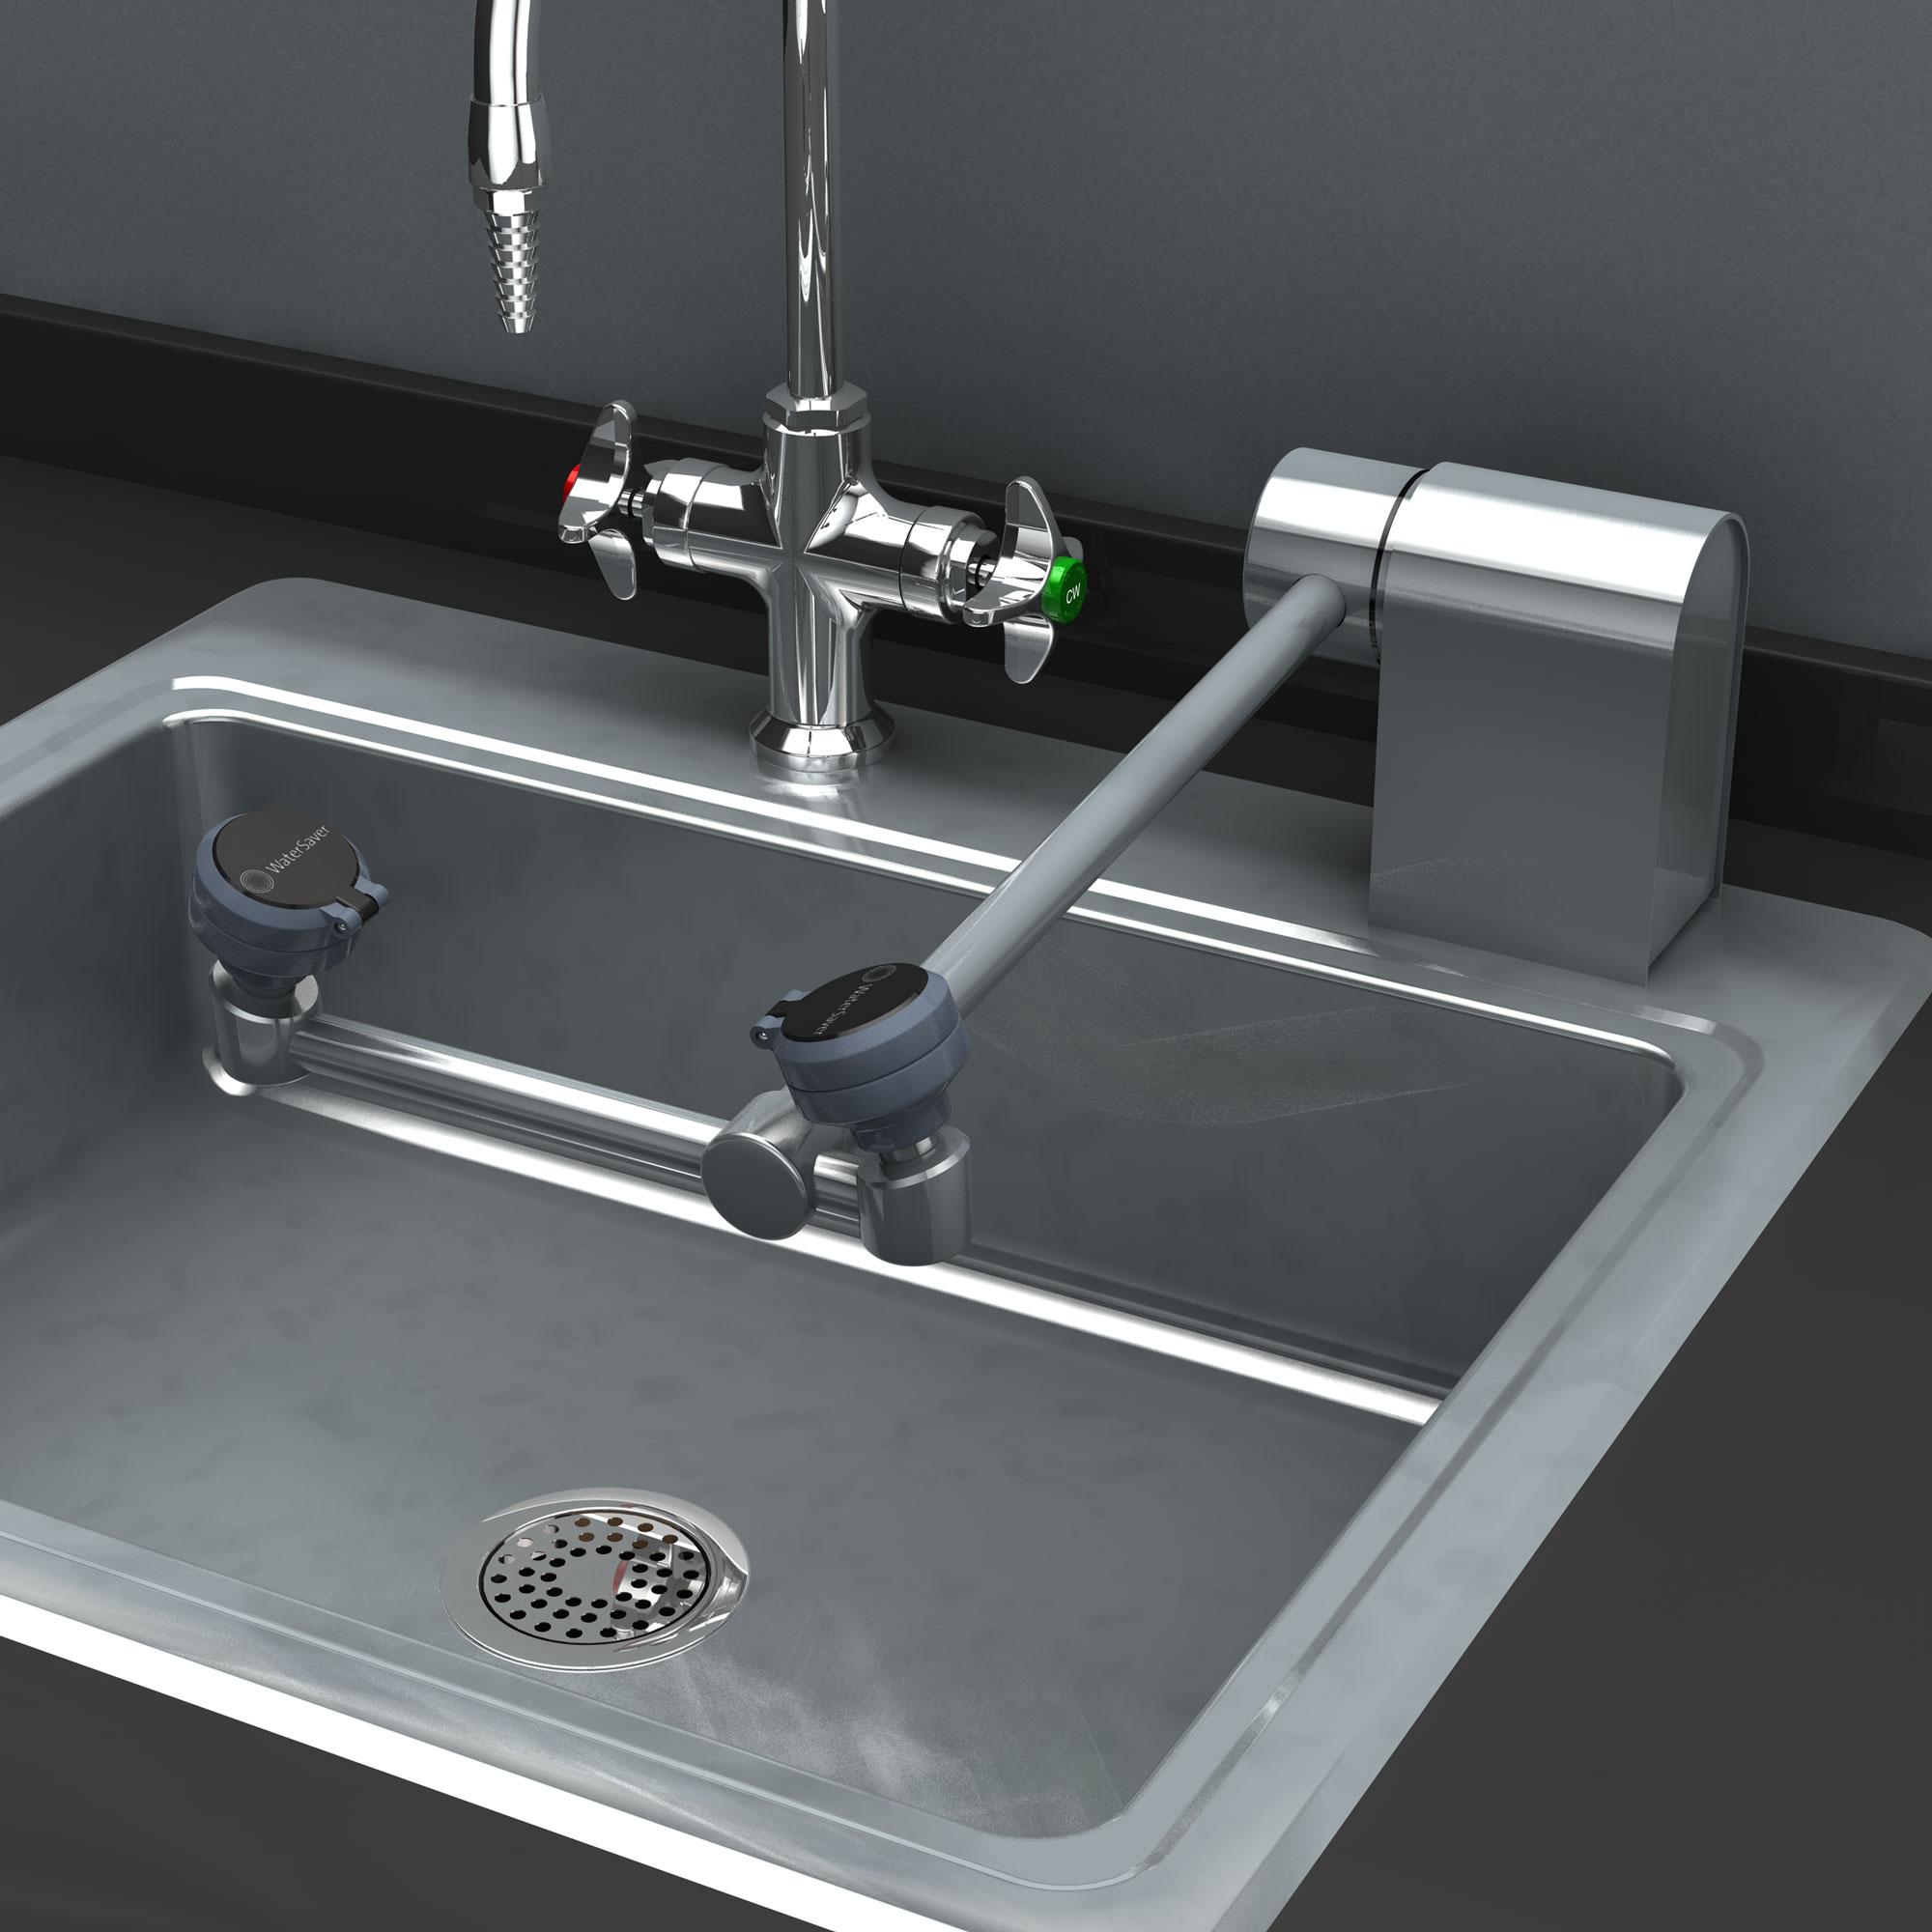 Ew899 Watersaver Faucet Co